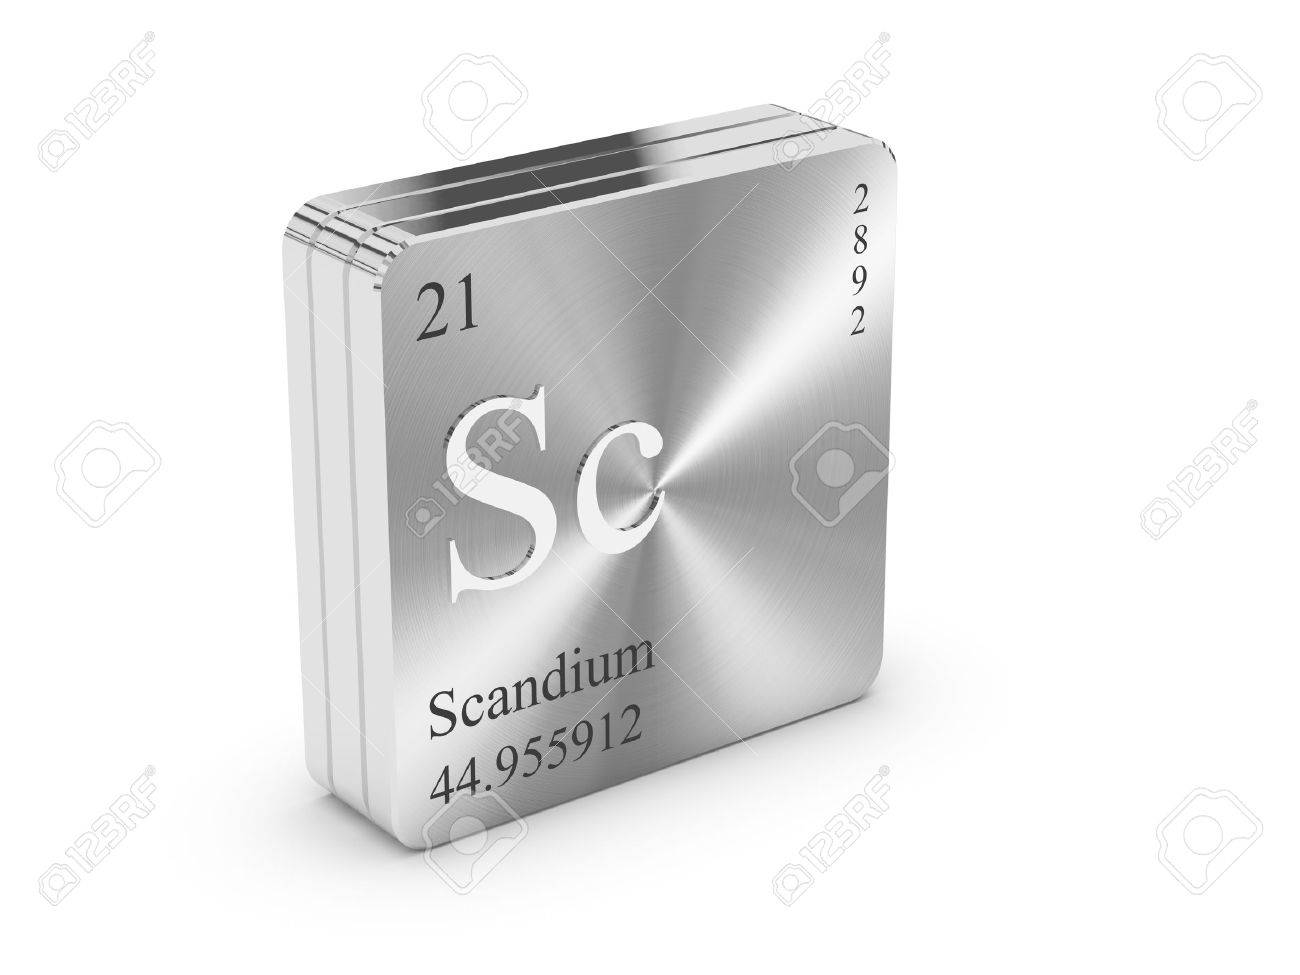 Scandium element of the periodic table on metal steel block scandium element of the periodic table on metal steel block stock photo 12083249 gamestrikefo Images